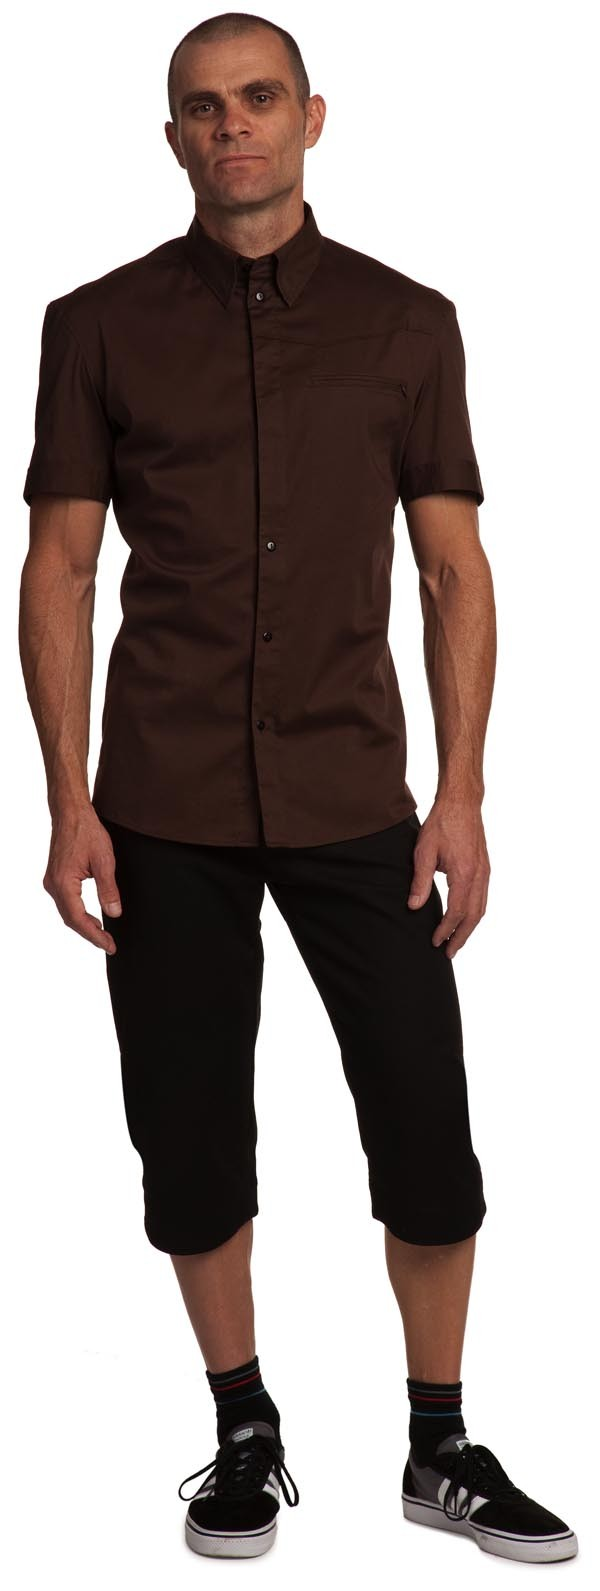 Derny shirt has a longer back and seamless features to reduce chafing